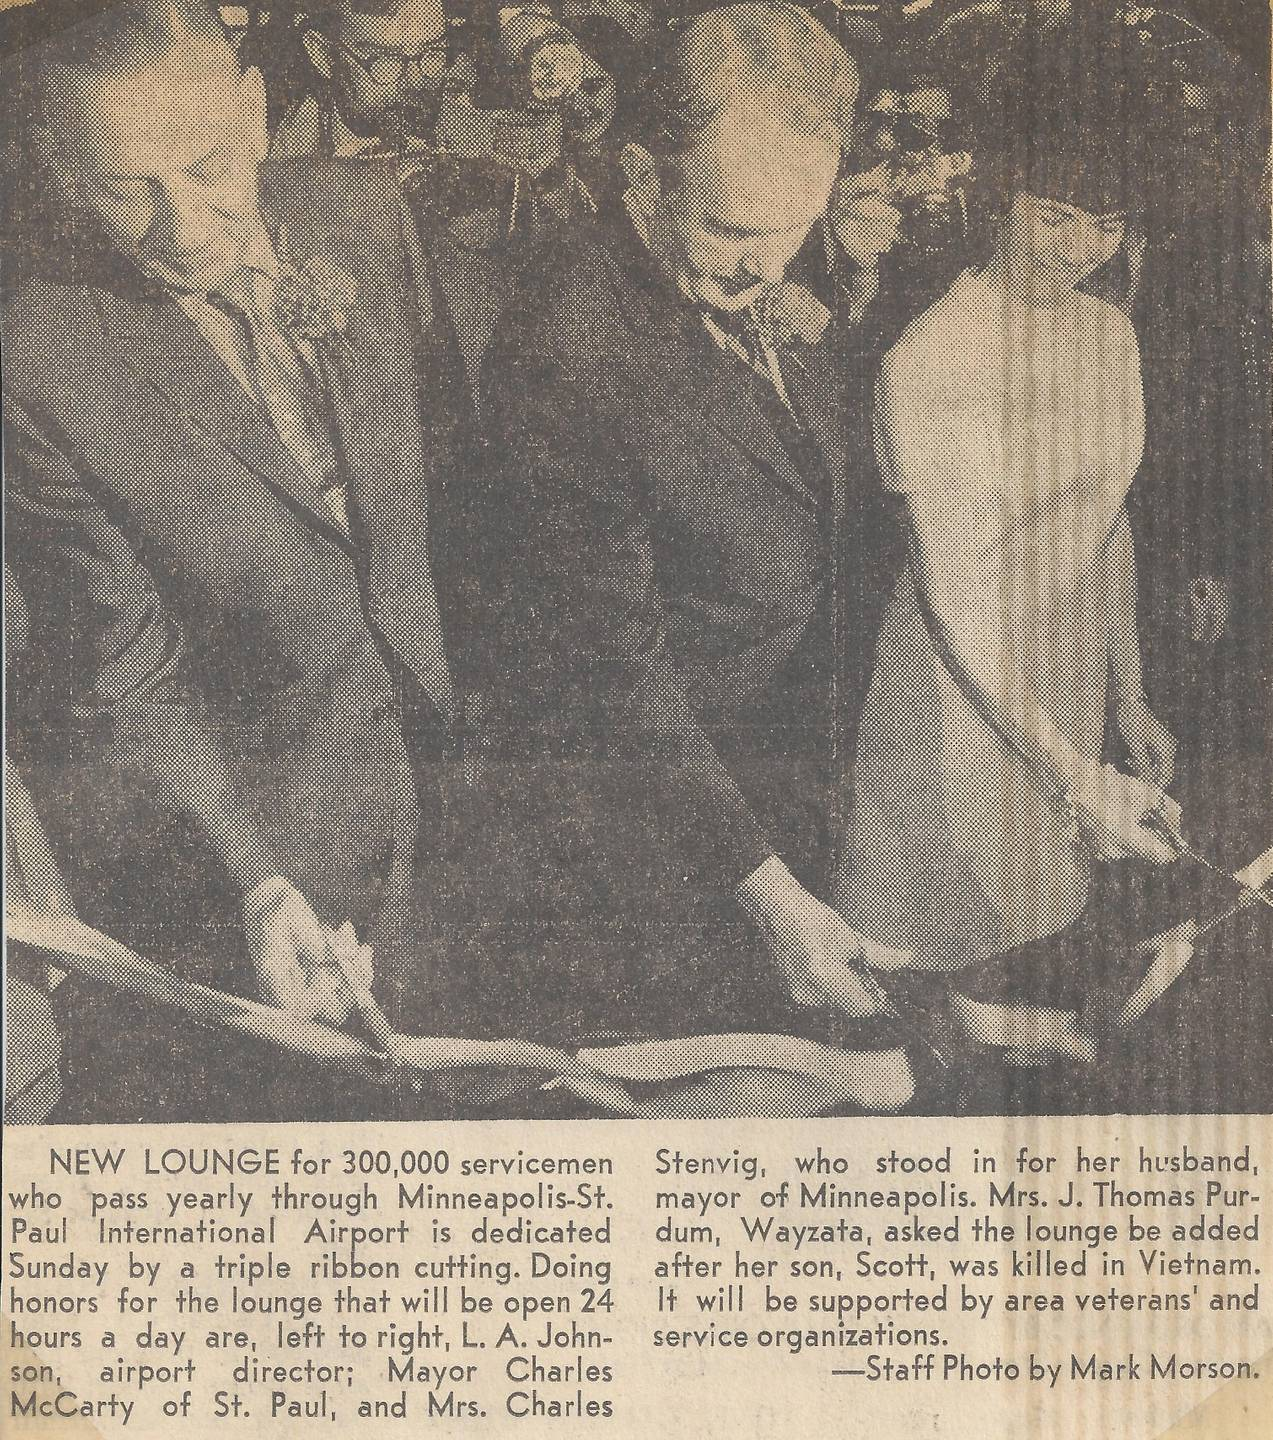 A news clipping that features three people wielding scissors, cutting a ribbon.